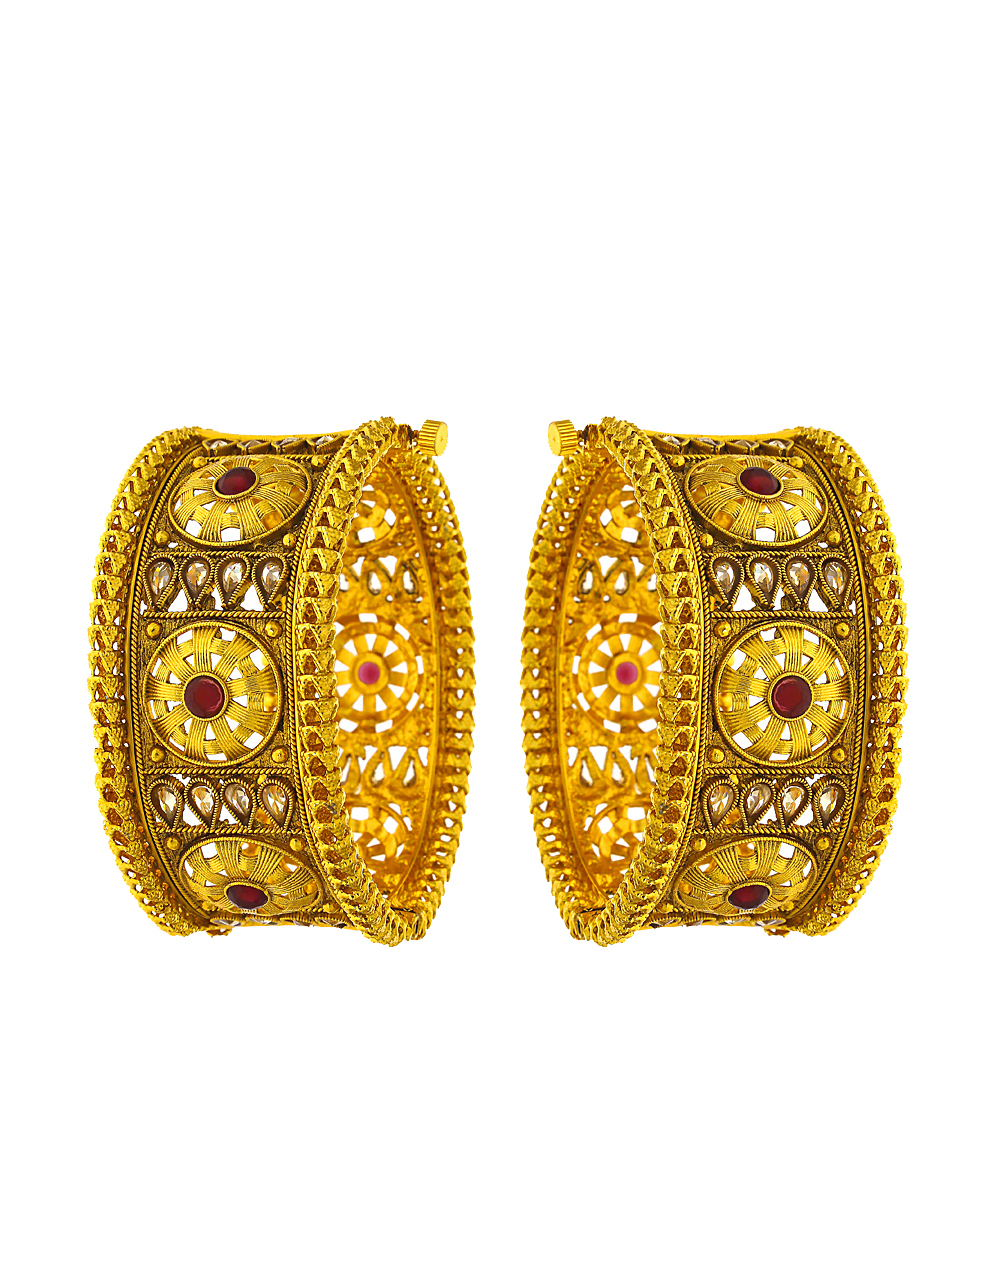 Round shape gold finish studded with red stone in centre bangles for women